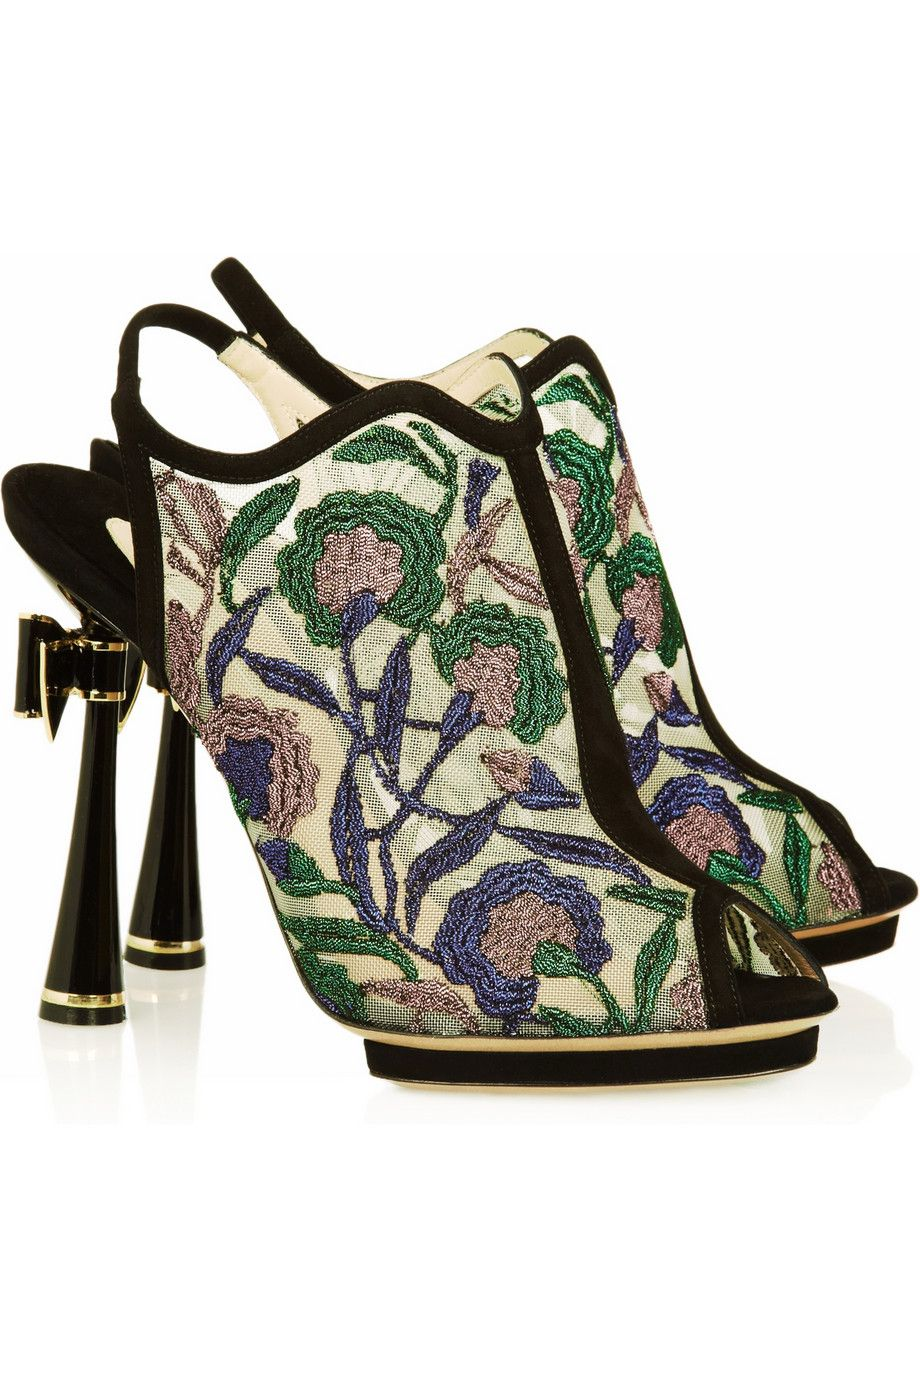 8224cf1e4c4 Metallic floral-embroidered mesh sandals by Nicholas Kirkwood ...